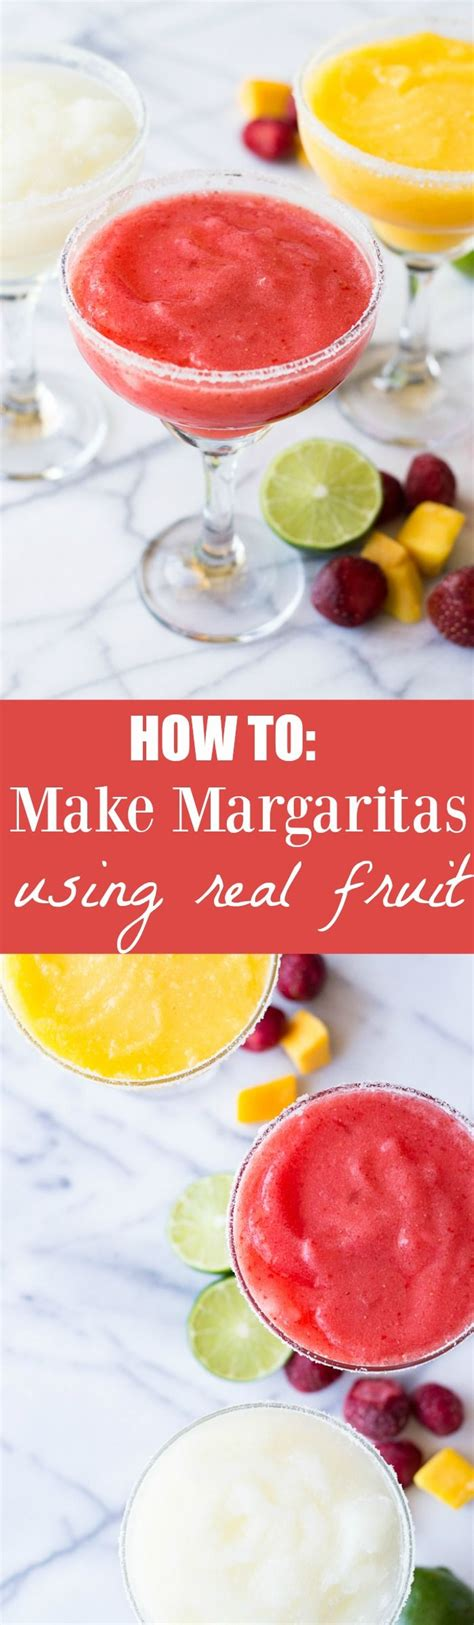 how to make margaritas 17 best ideas about how to make margaritas on pinterest margarita bar watermelon cocktail and